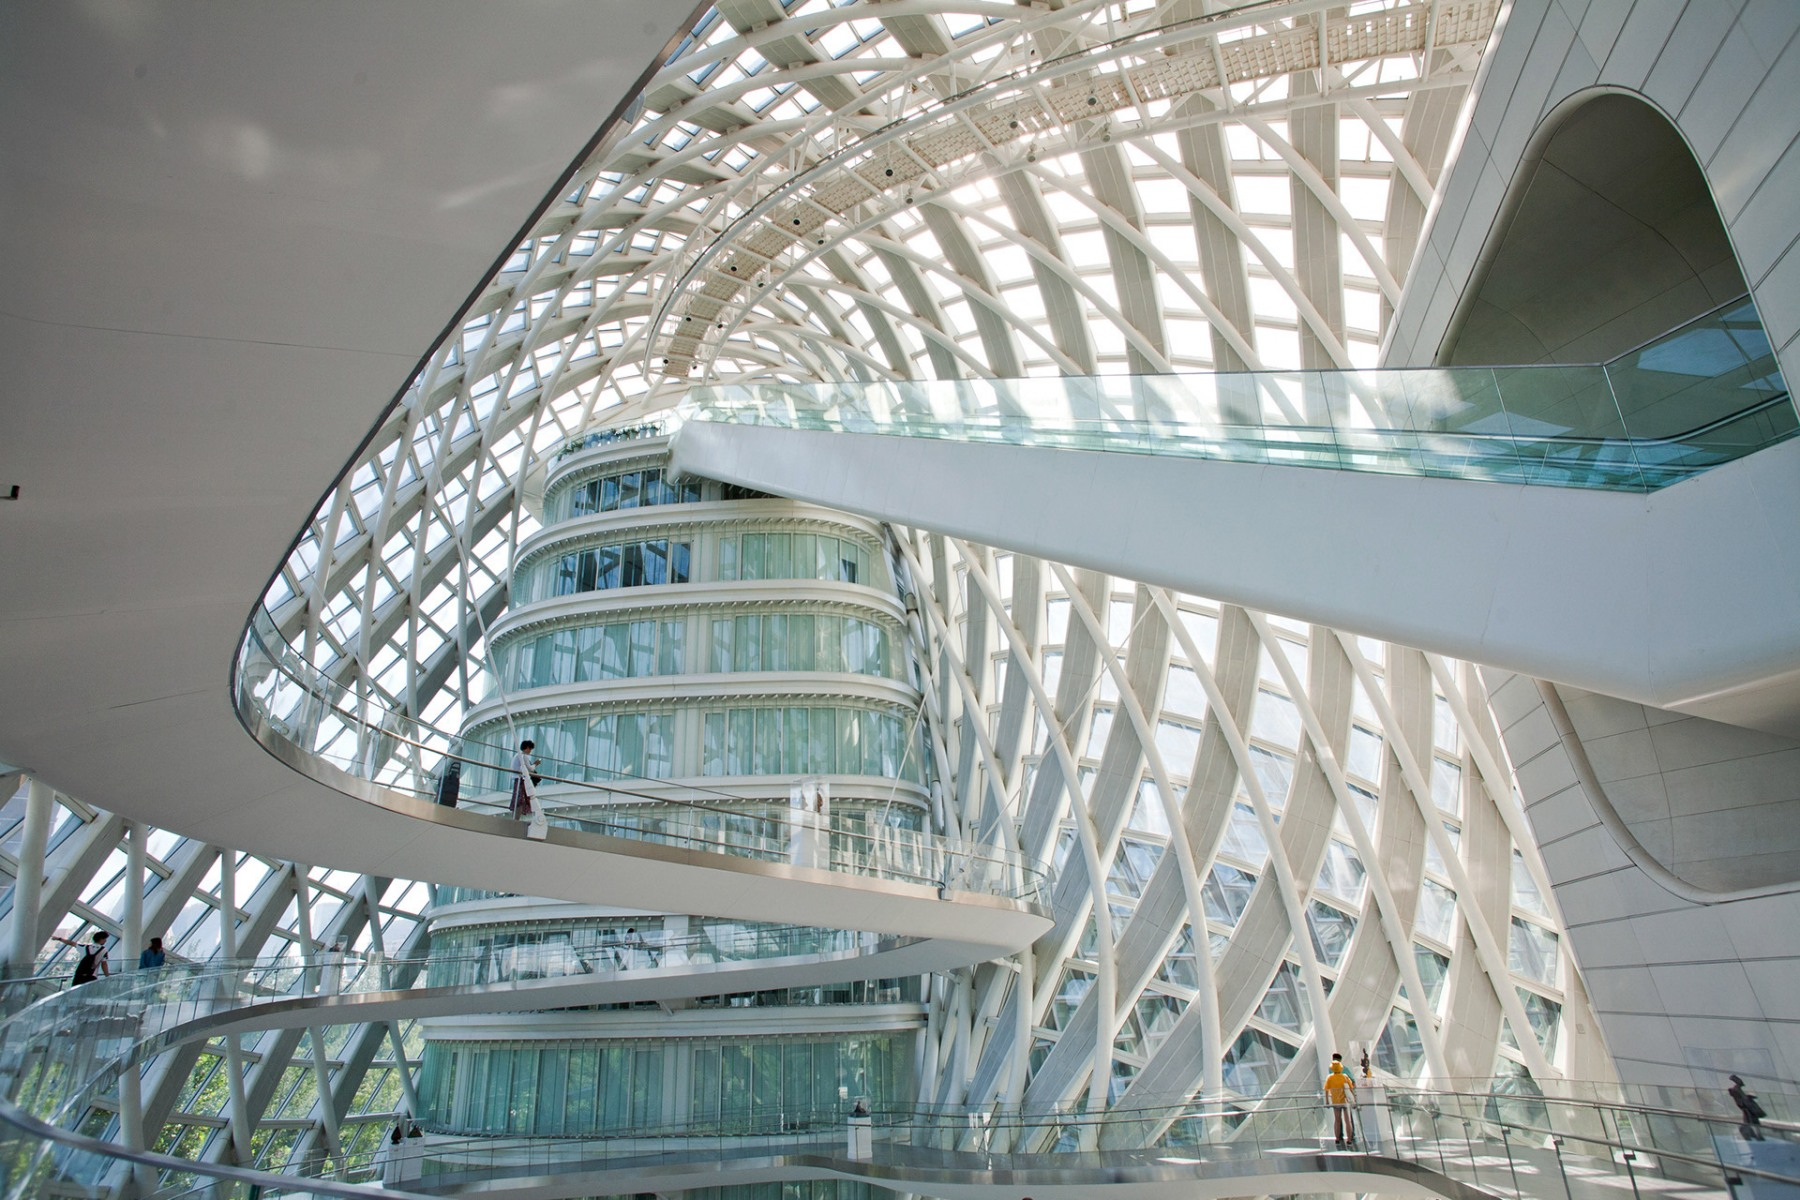 Architectural-Photography-by-Ekaterina-Busygina-Daily-design-inspiration-for-creatives-Inspirati-22